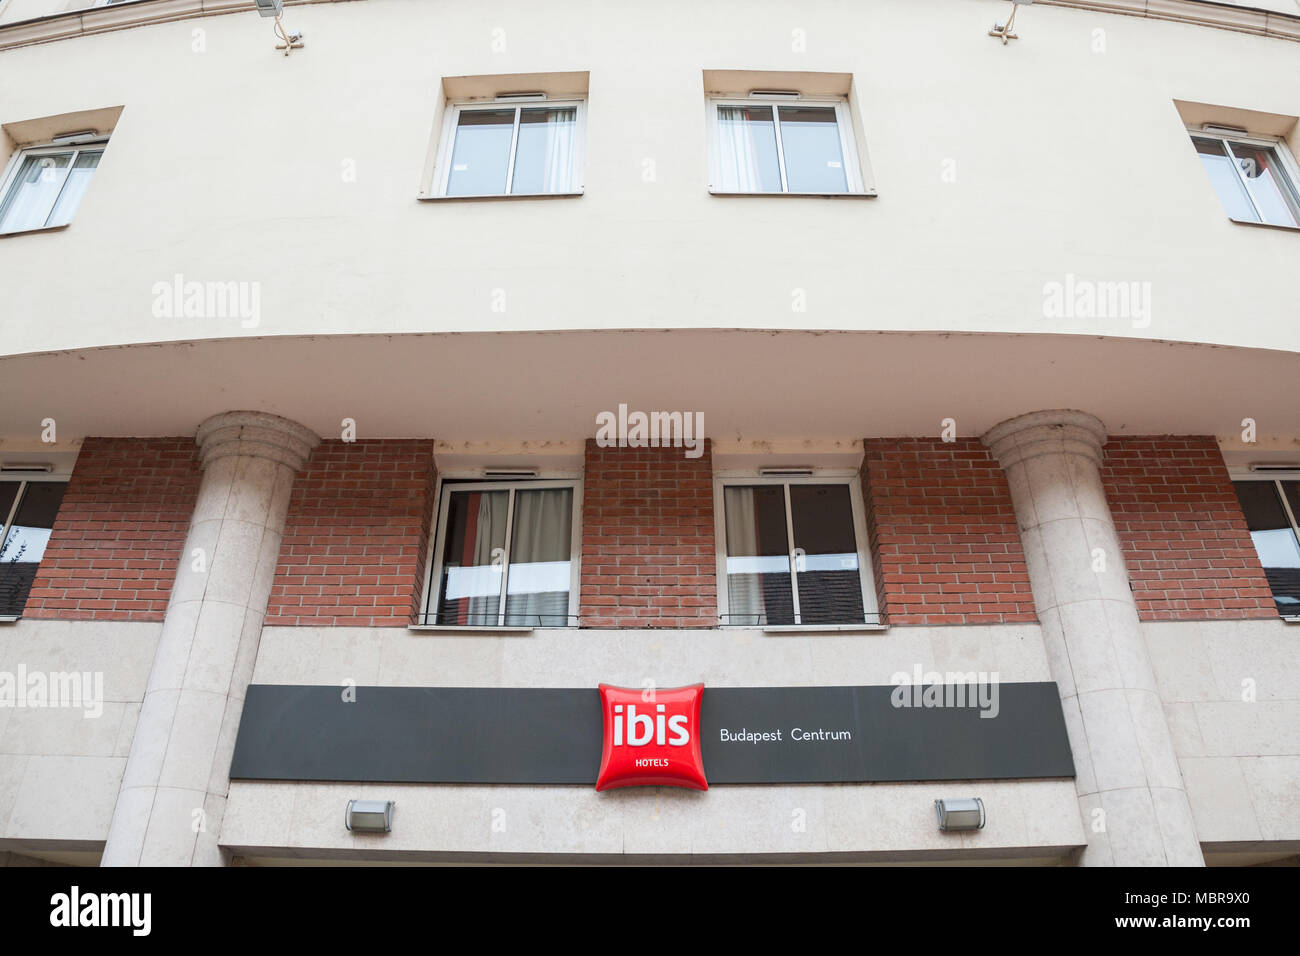 BUDAPEST, HUNGARY - APRIL 7, 2018: Ibis logo on their main hotel for Hungary during the afternoon Ibis is a hotel chain of the Accorhotel group  Pictu - Stock Image